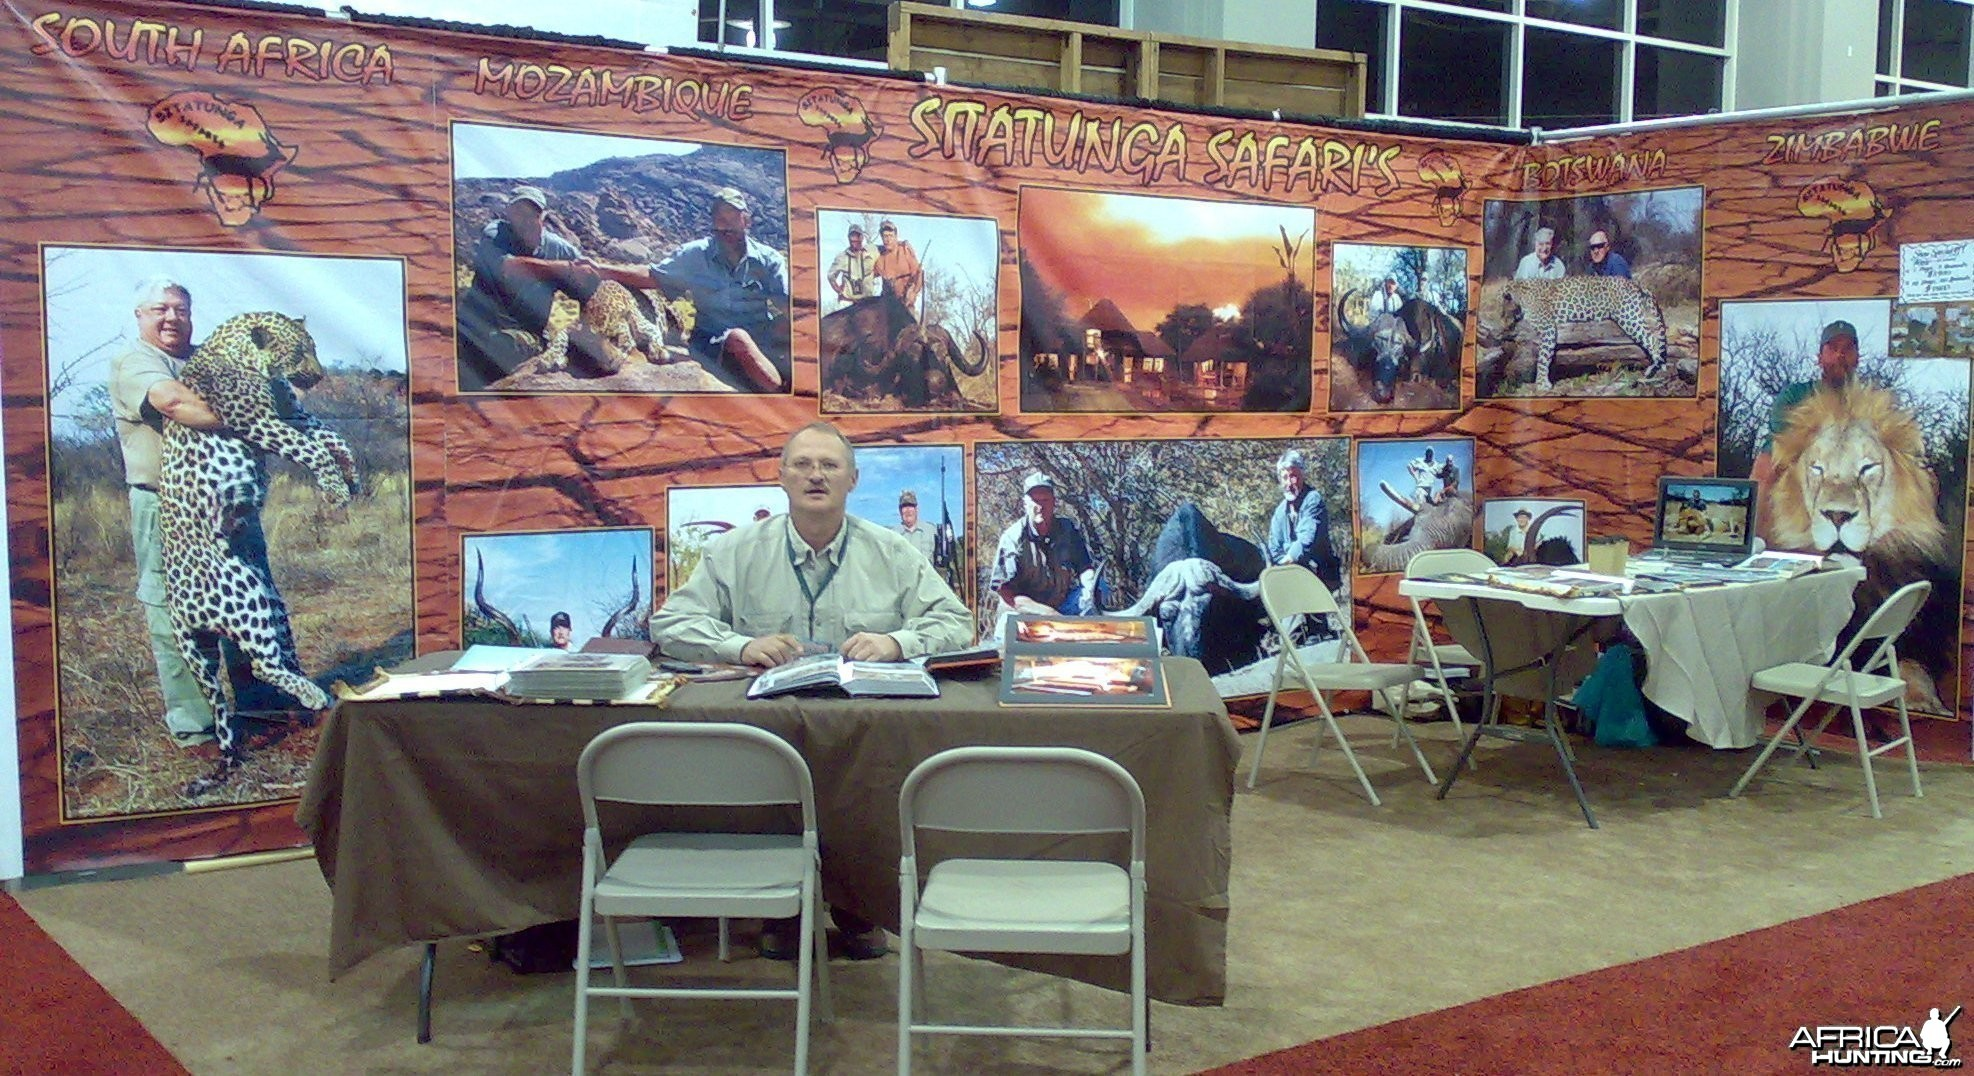 Sitatunga Safari Booth at SCI Show